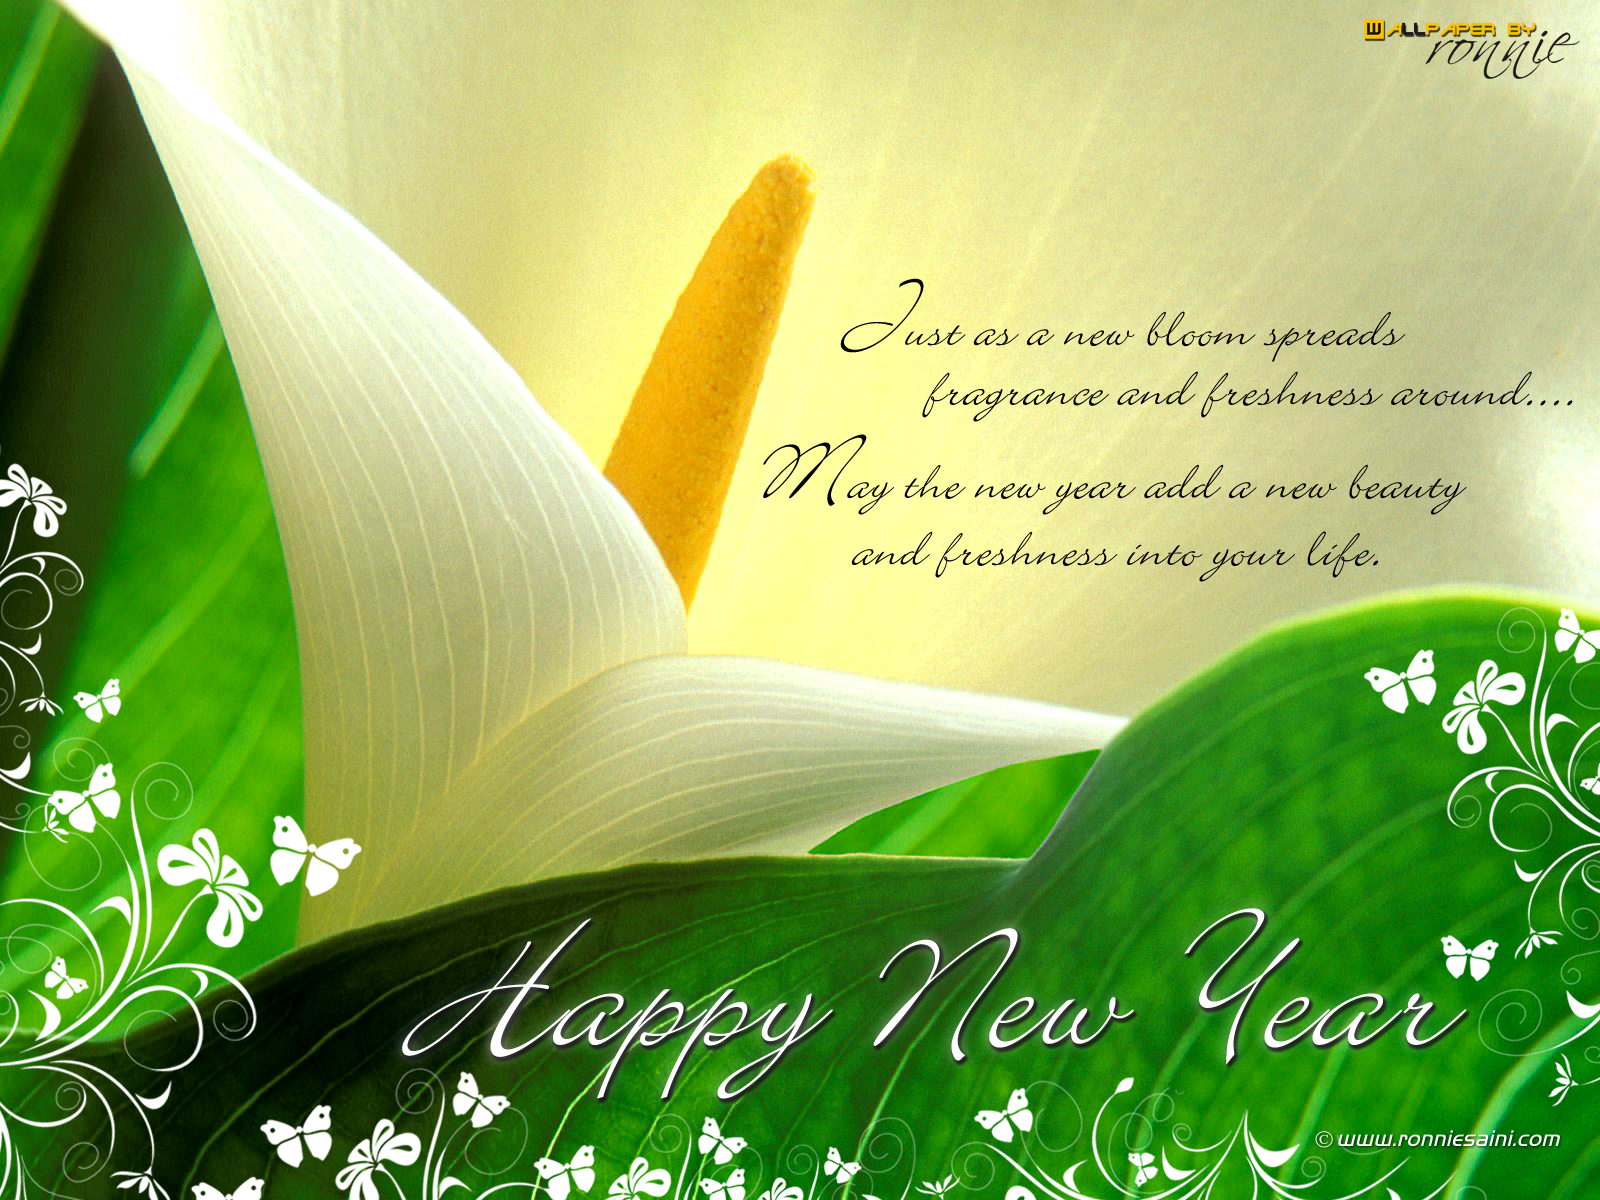 Happy New Year Wallpapers. 1600 x 1200.Happy Chinese New Year Greetings Cantonese